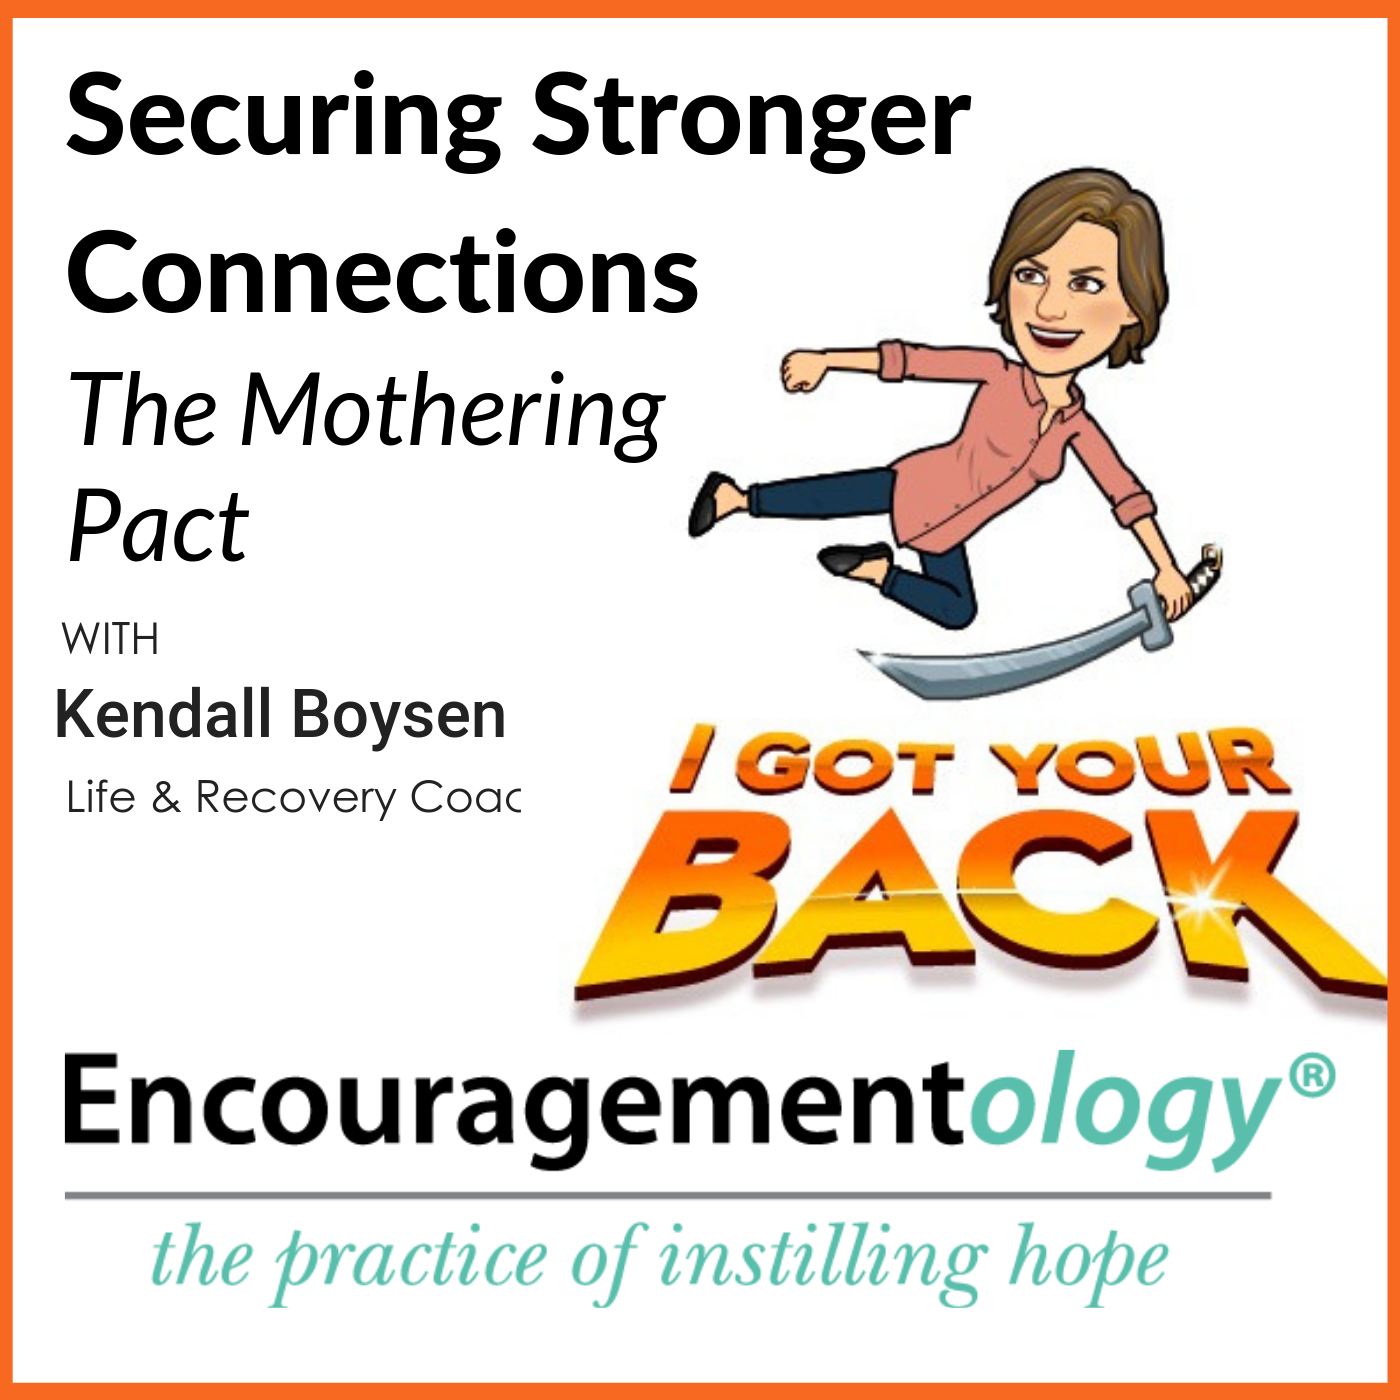 Securing Stronger Connections, The Mothering Pact